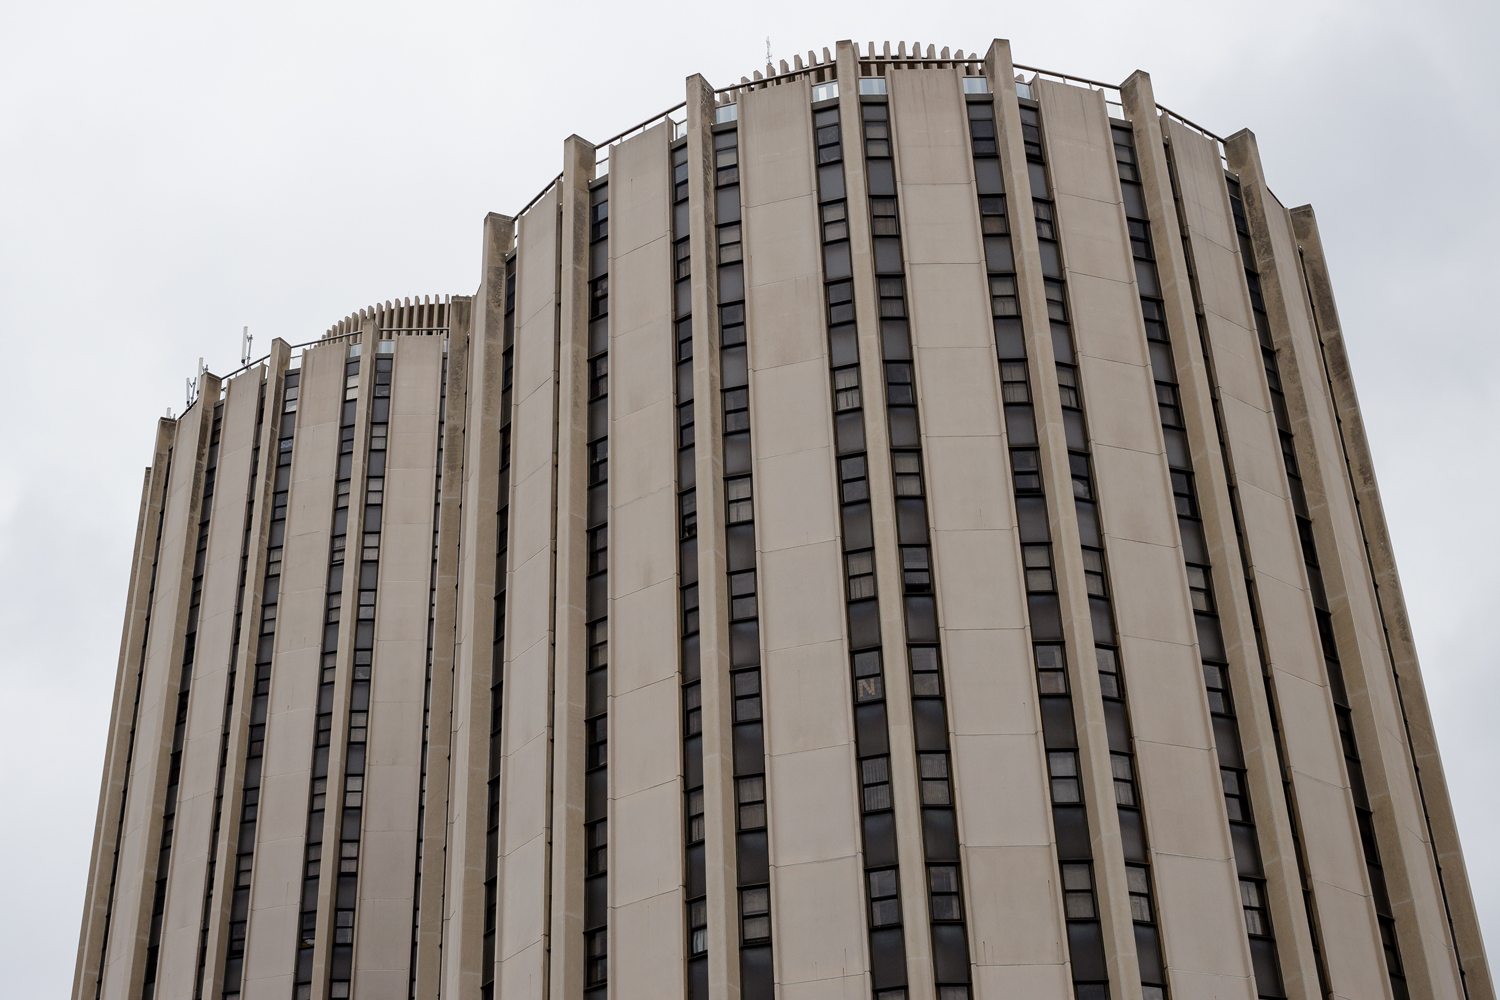 Pitt has outsourced WiFi services for all residence halls and University-owned housing units beginning this fall, and will charge students for faster speeds.